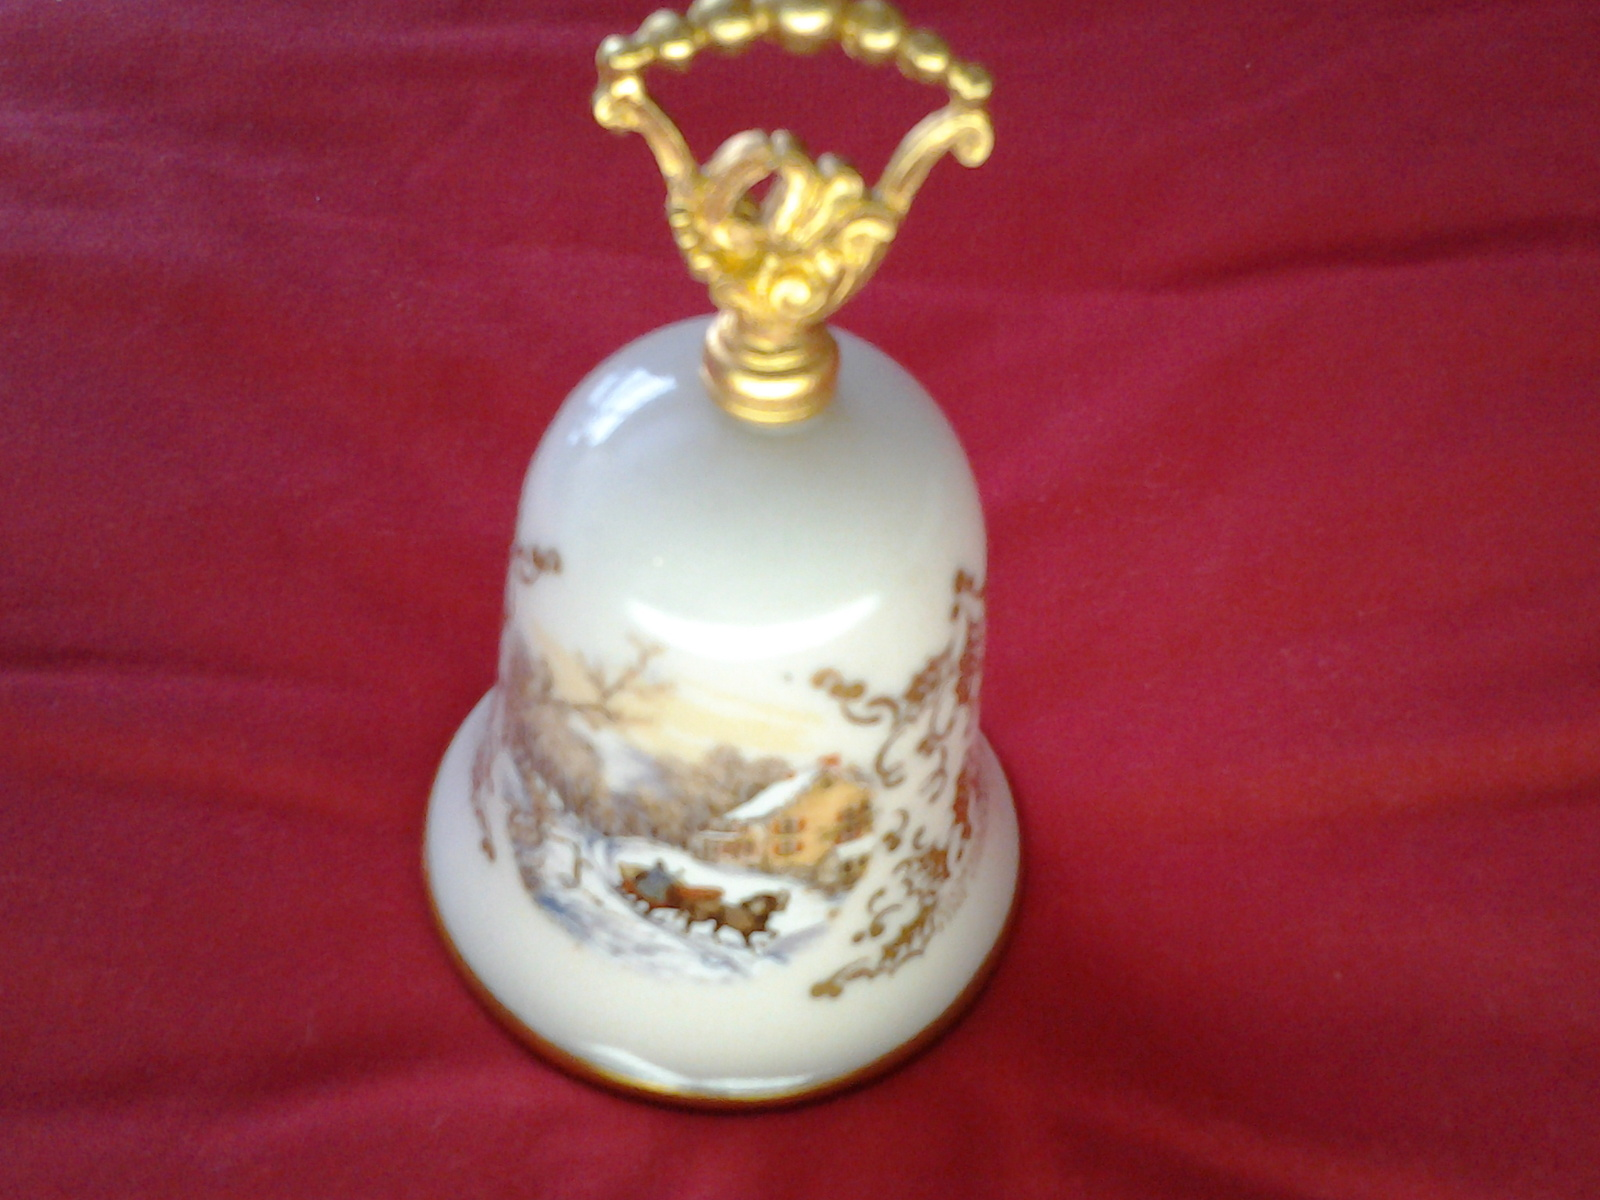 Gorham Currier & Ives Christmas Bell Noel 1977 Gold Holly Victorian Scene